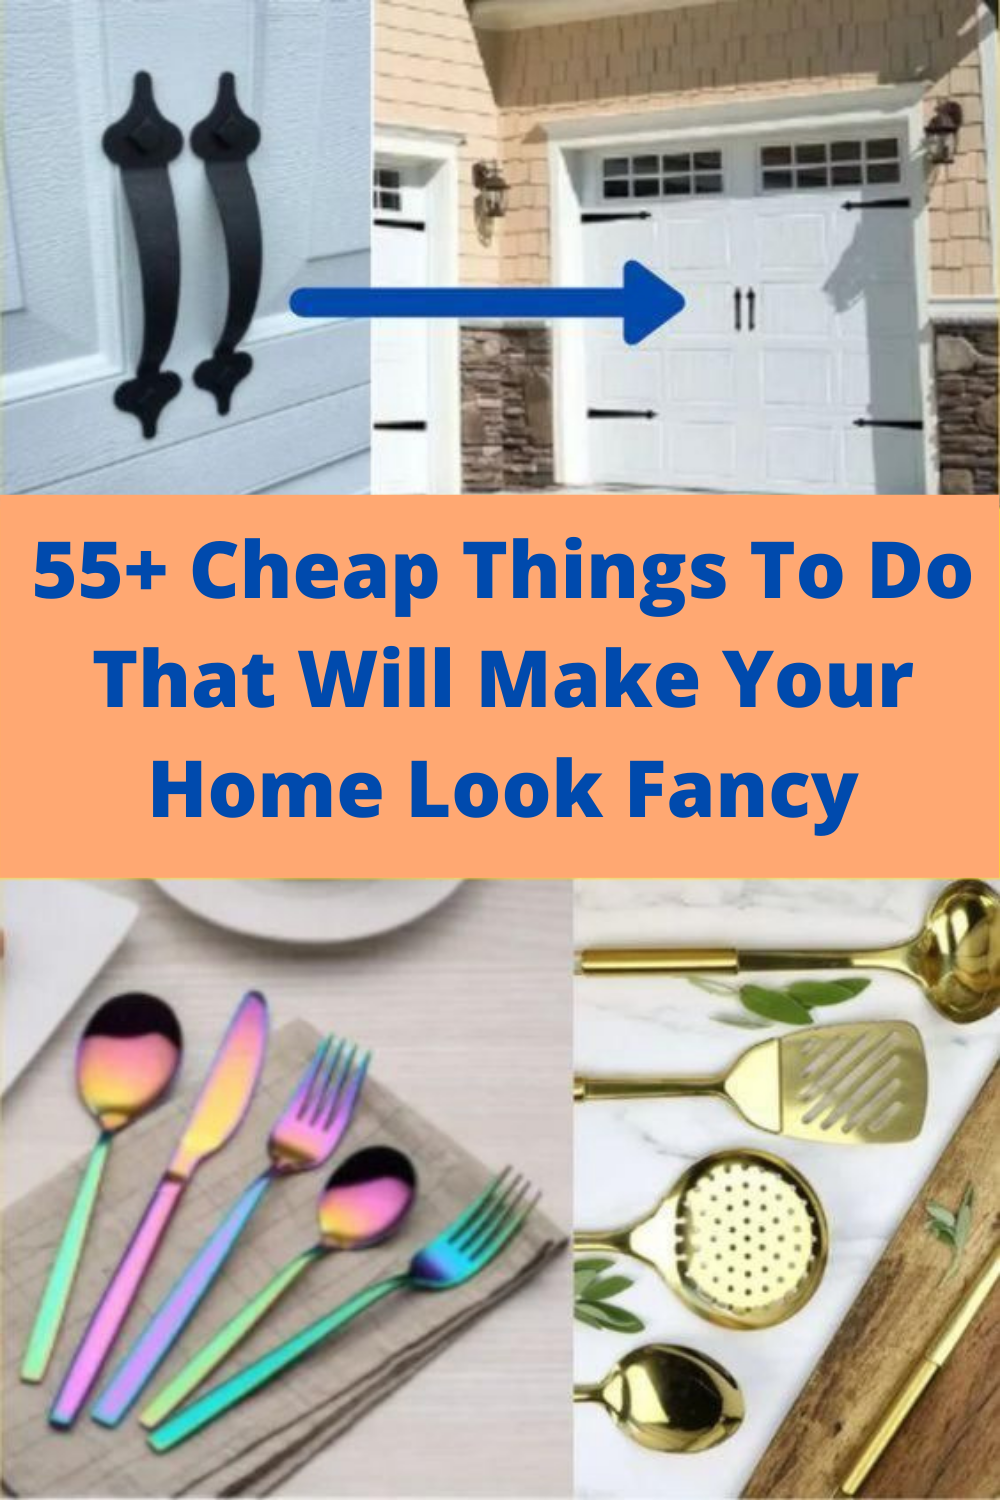 55 Cheap Things To Do That Will Make Your Home Look Fancy In 2020 Cheap Things To Do Diy Life Hacks Hacks Diy